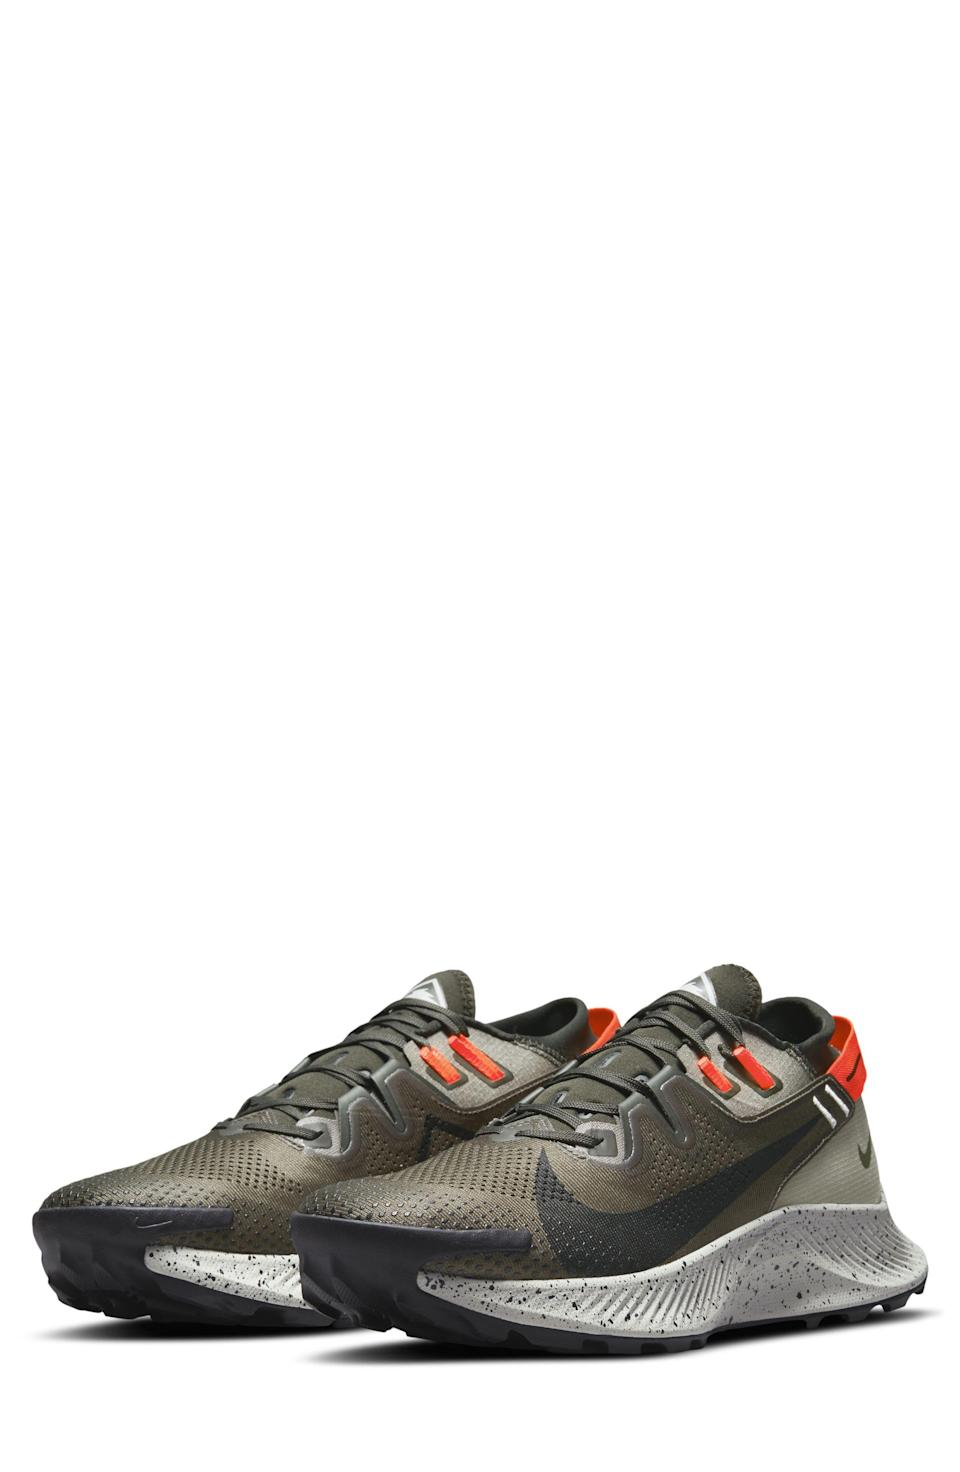 """<p><strong>Nike</strong></p><p>nordstrom.com</p><p><strong>$94.90</strong></p><p><a href=""""https://go.redirectingat.com?id=74968X1596630&url=https%3A%2F%2Fwww.nordstrom.com%2Fs%2Fnike-pegasus-trail-2-trail-running-shoe-men%2F5756811&sref=https%3A%2F%2Fwww.menshealth.com%2Fstyle%2Fg37081969%2Fnordstroms-anniversary-sale-best-sneakers%2F"""" rel=""""nofollow noopener"""" target=""""_blank"""" data-ylk=""""slk:BUY IT HERE"""" class=""""link rapid-noclick-resp"""">BUY IT HERE</a></p><p><del>$130</del><strong><br>$95</strong></p><p>In the mood for some trail running while you're away on your <a href=""""https://www.menshealth.com/technology-gear/g36954813/mens-health-outdoor-awards-2021/"""" rel=""""nofollow noopener"""" target=""""_blank"""" data-ylk=""""slk:camping trip"""" class=""""link rapid-noclick-resp"""">camping trip</a>? We thought you might be. Pack these into your duffel and you'll be good to go.</p>"""